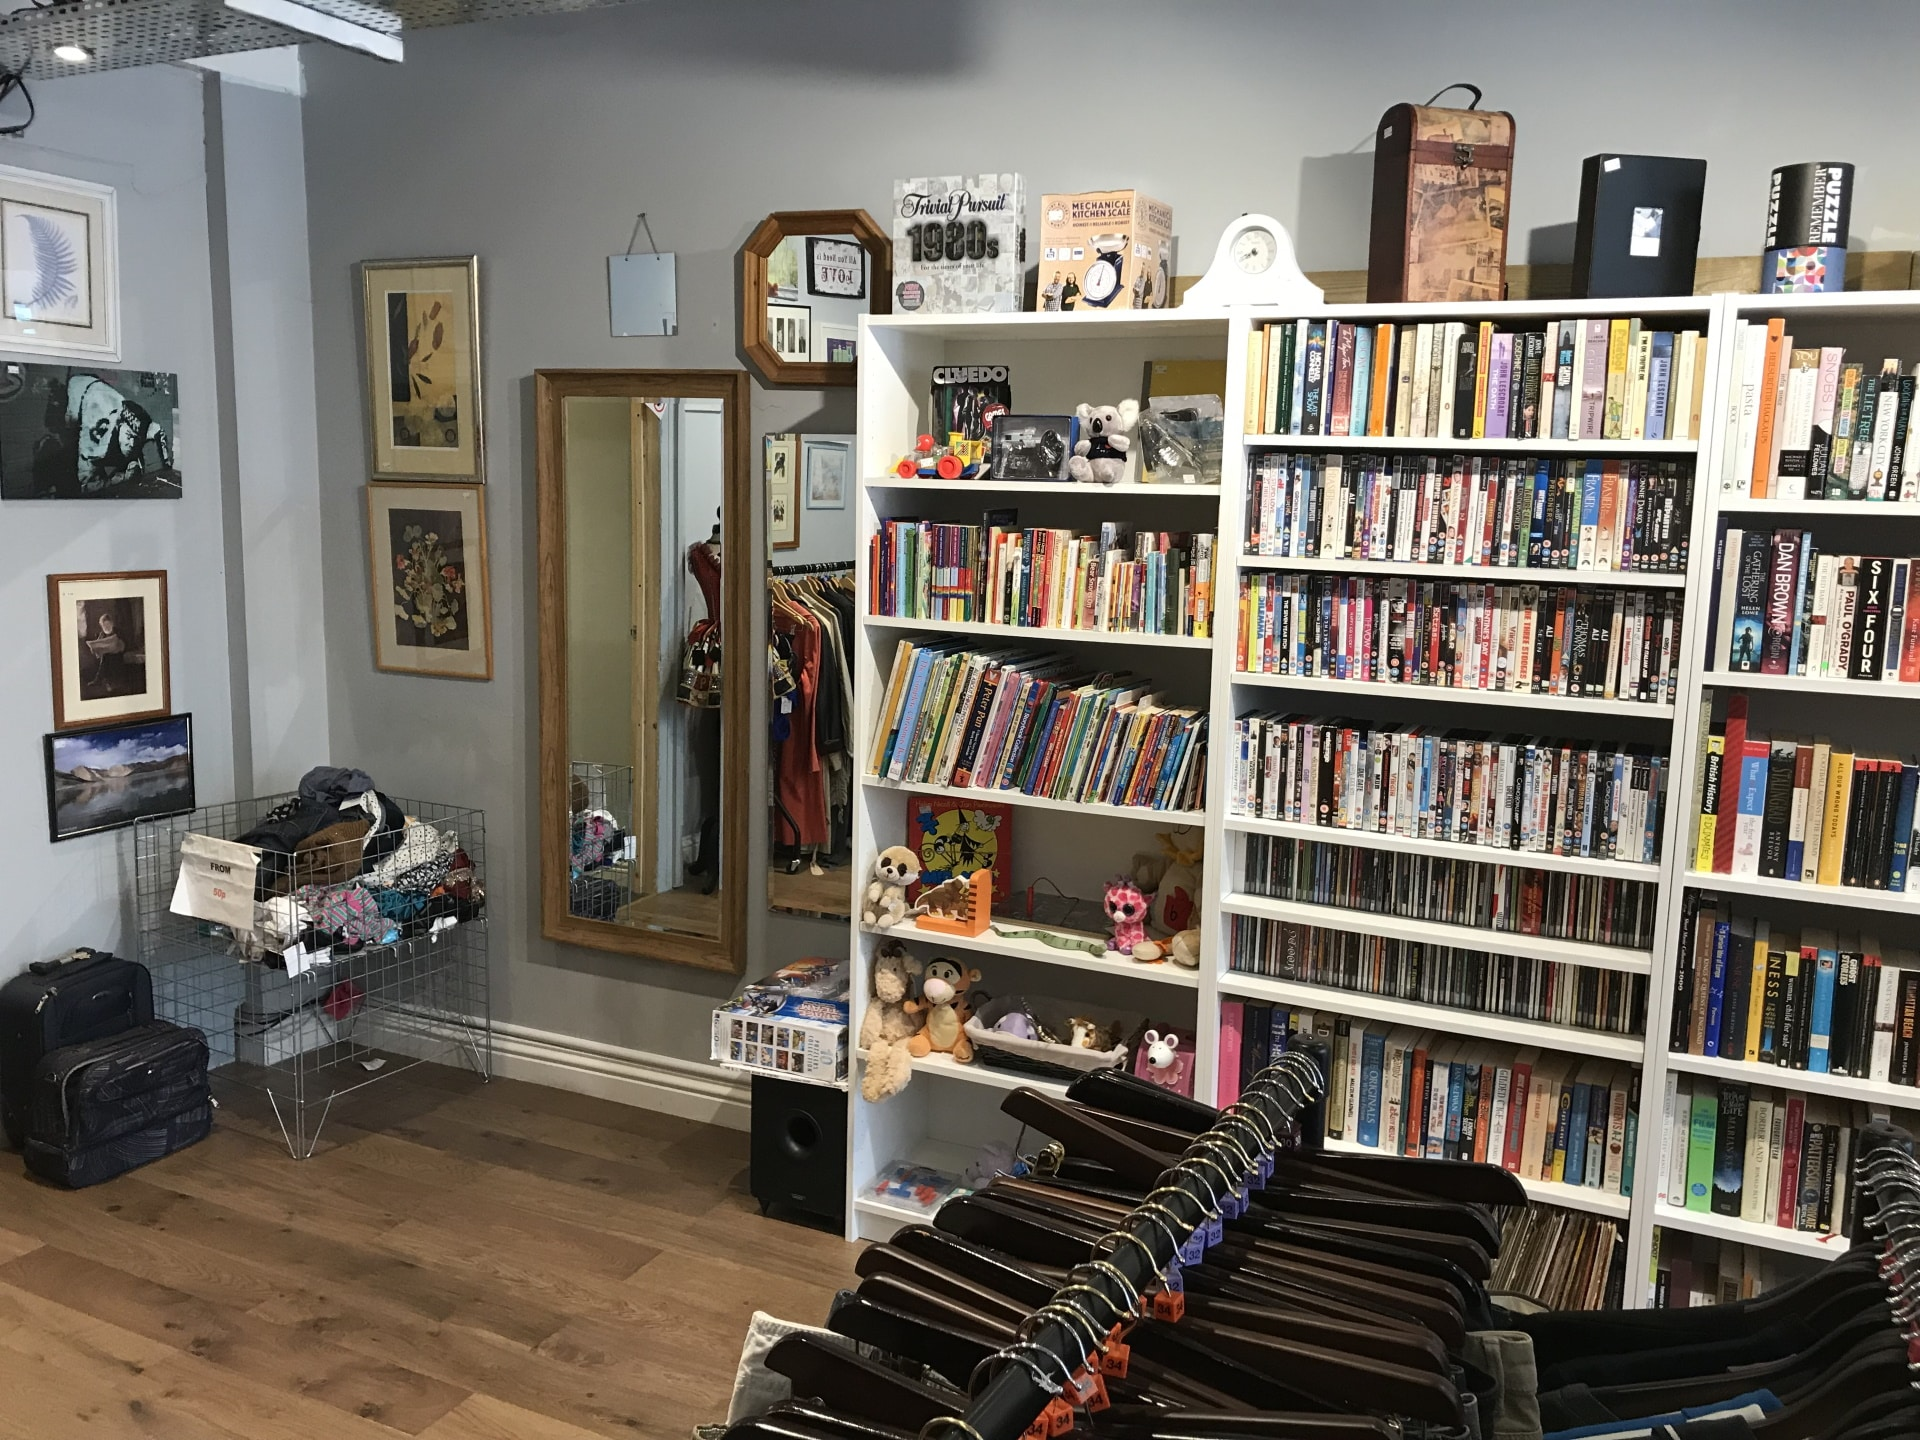 Books, DVD's and toys